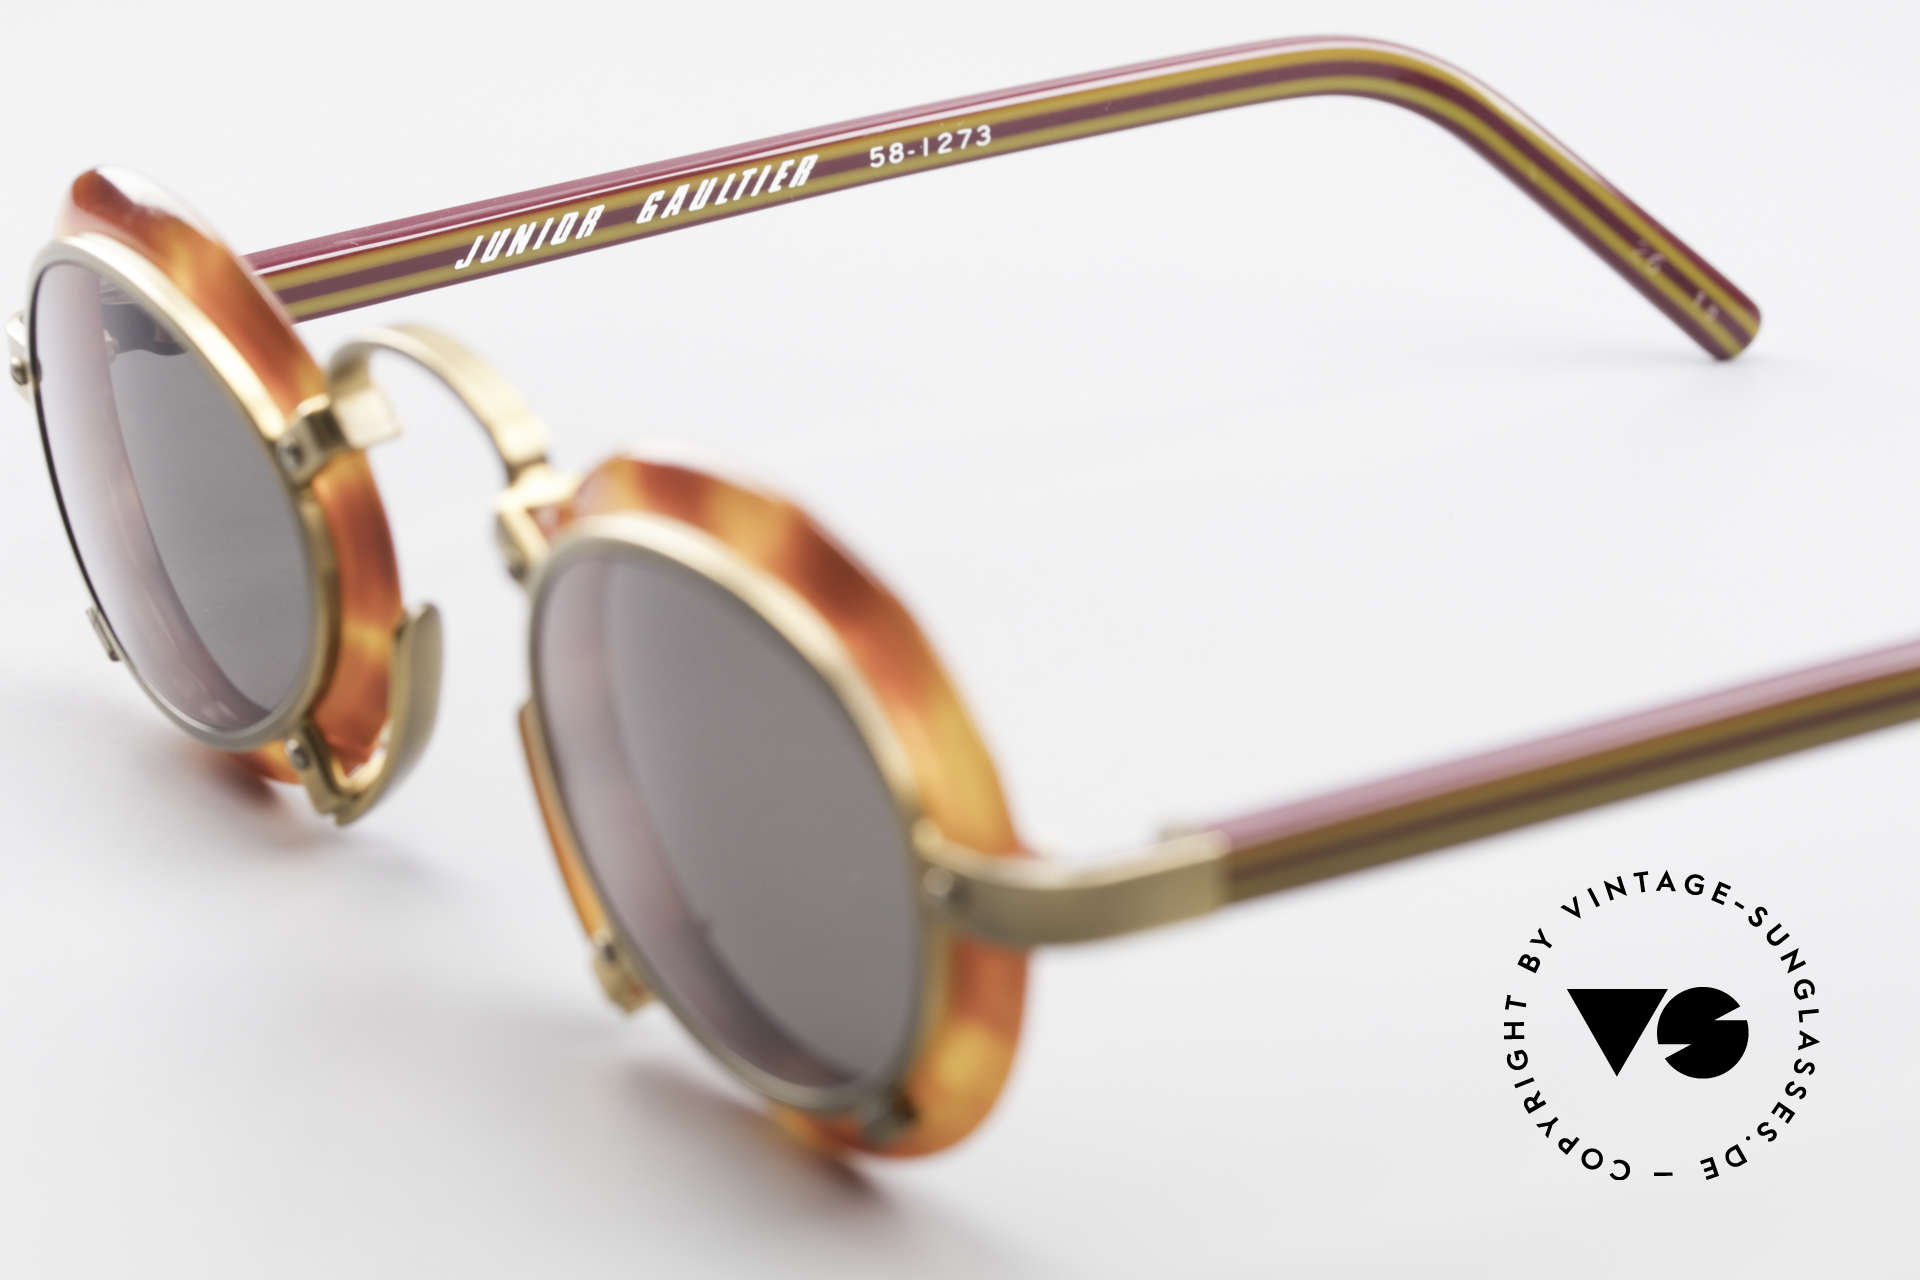 Jean Paul Gaultier 58-1273 Designer Sunglasses JPG 90's, true rarity in high-end quality (100% UV protect.), Made for Men and Women